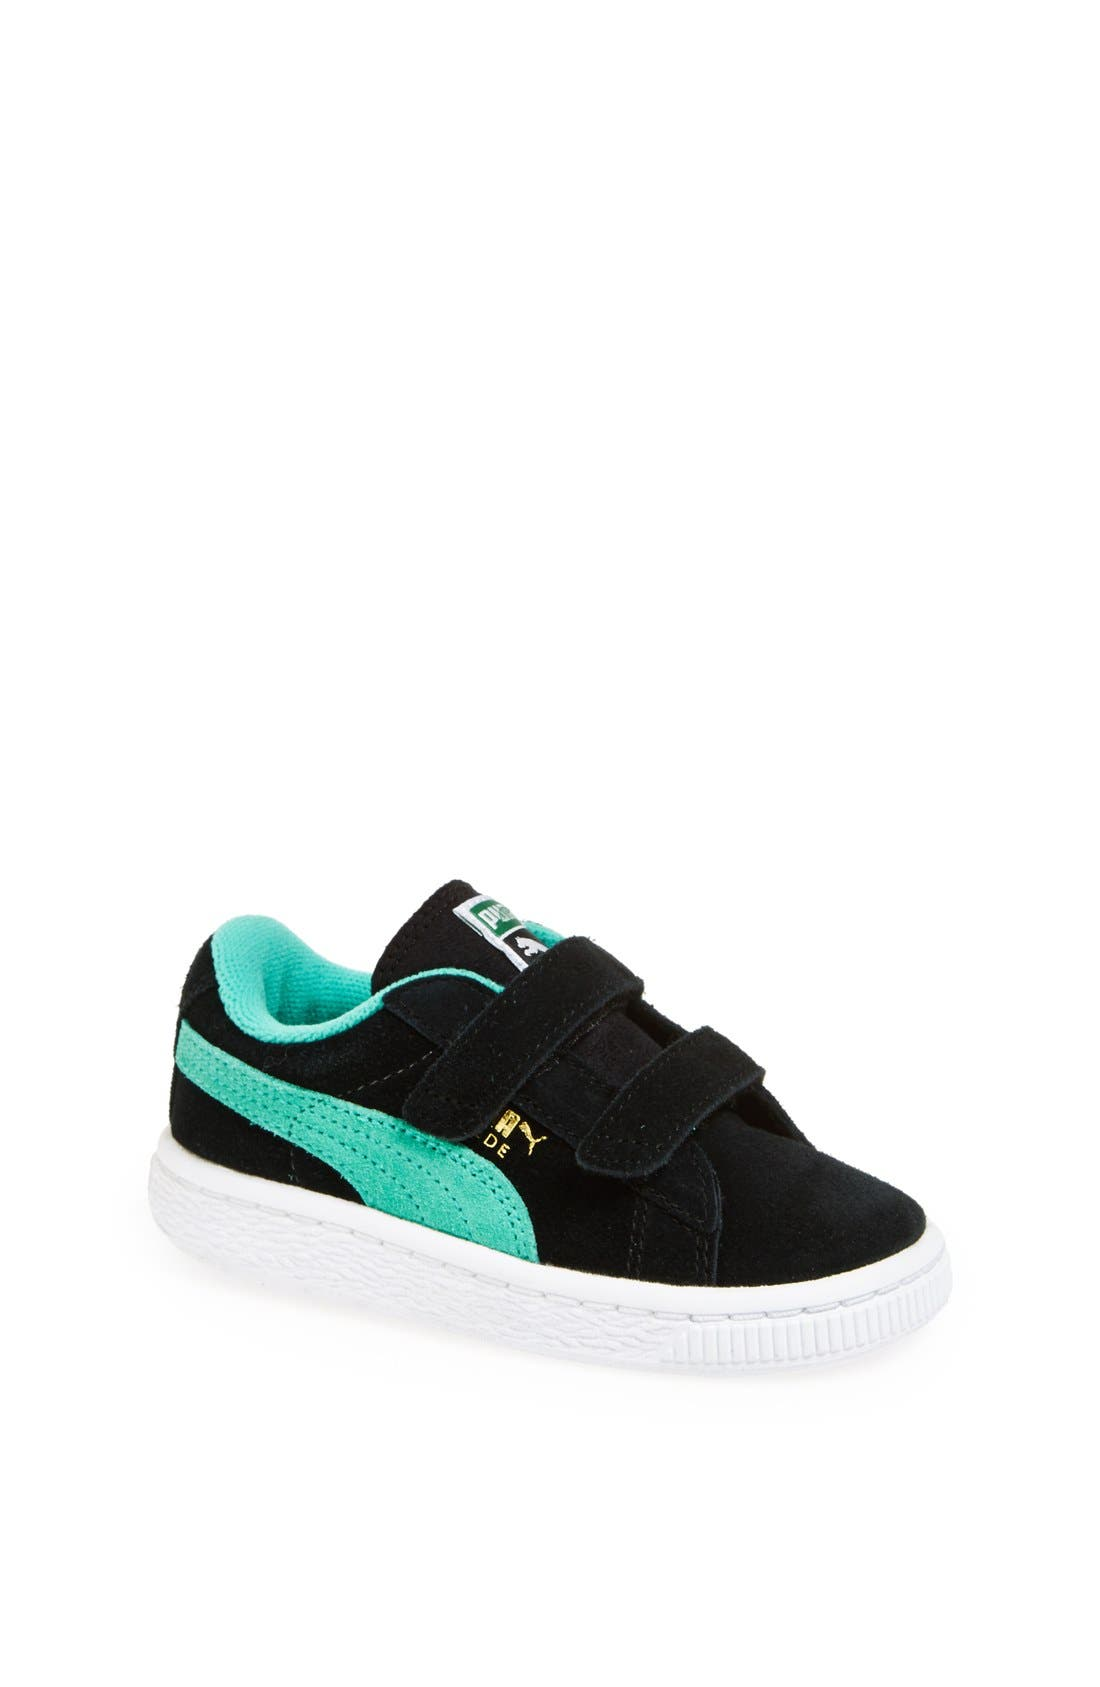 Alternate Image 1 Selected - PUMA Suede Sneaker (Baby, Walker, Toddler & Little Kid)